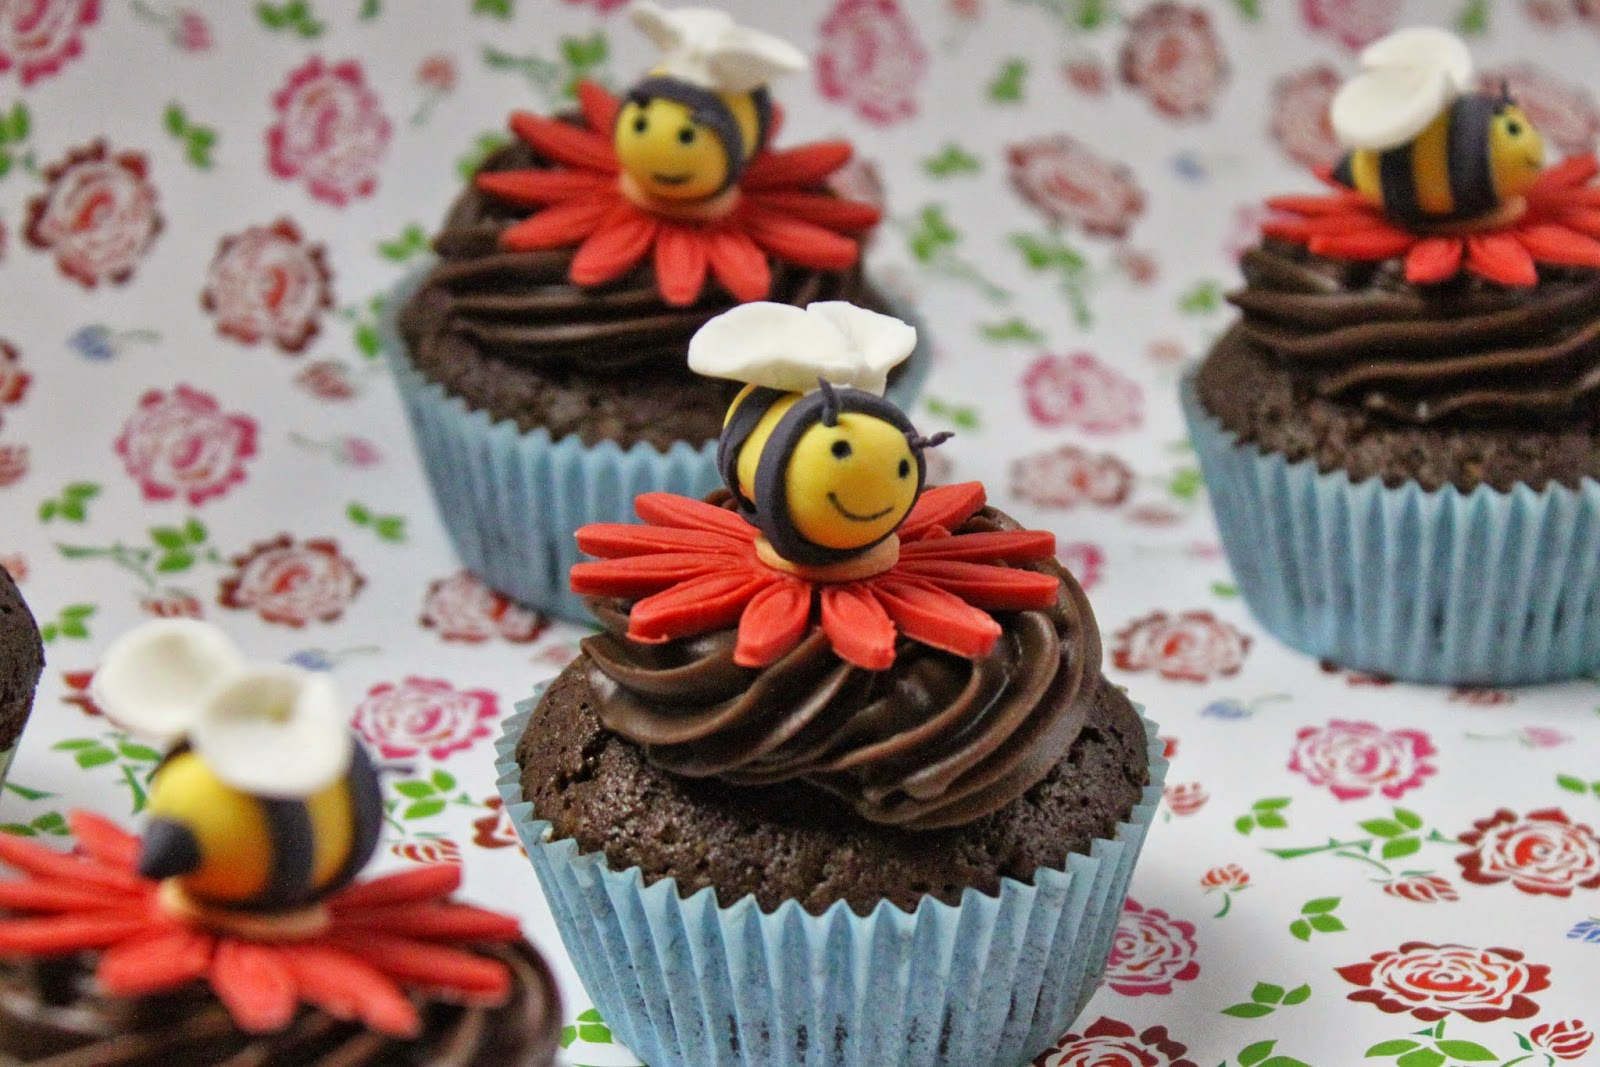 bienen cupcake topping ideen f r kindergeburtstag rezepte jamblog. Black Bedroom Furniture Sets. Home Design Ideas